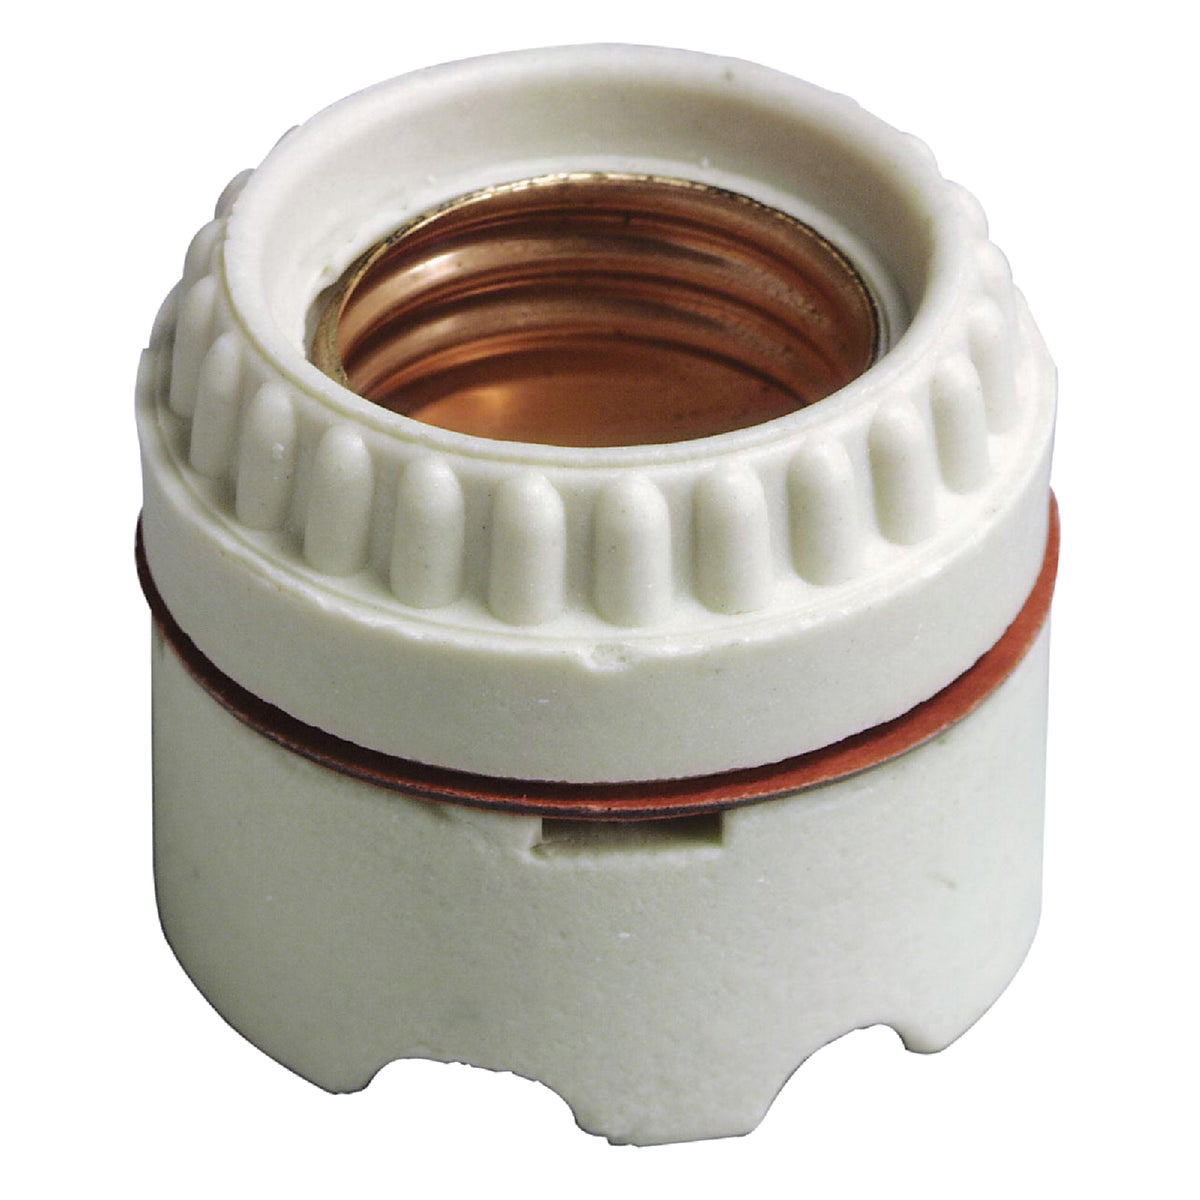 PORCELAIN LAMPHOLDER - 0129350 by Leviton Mfg Co